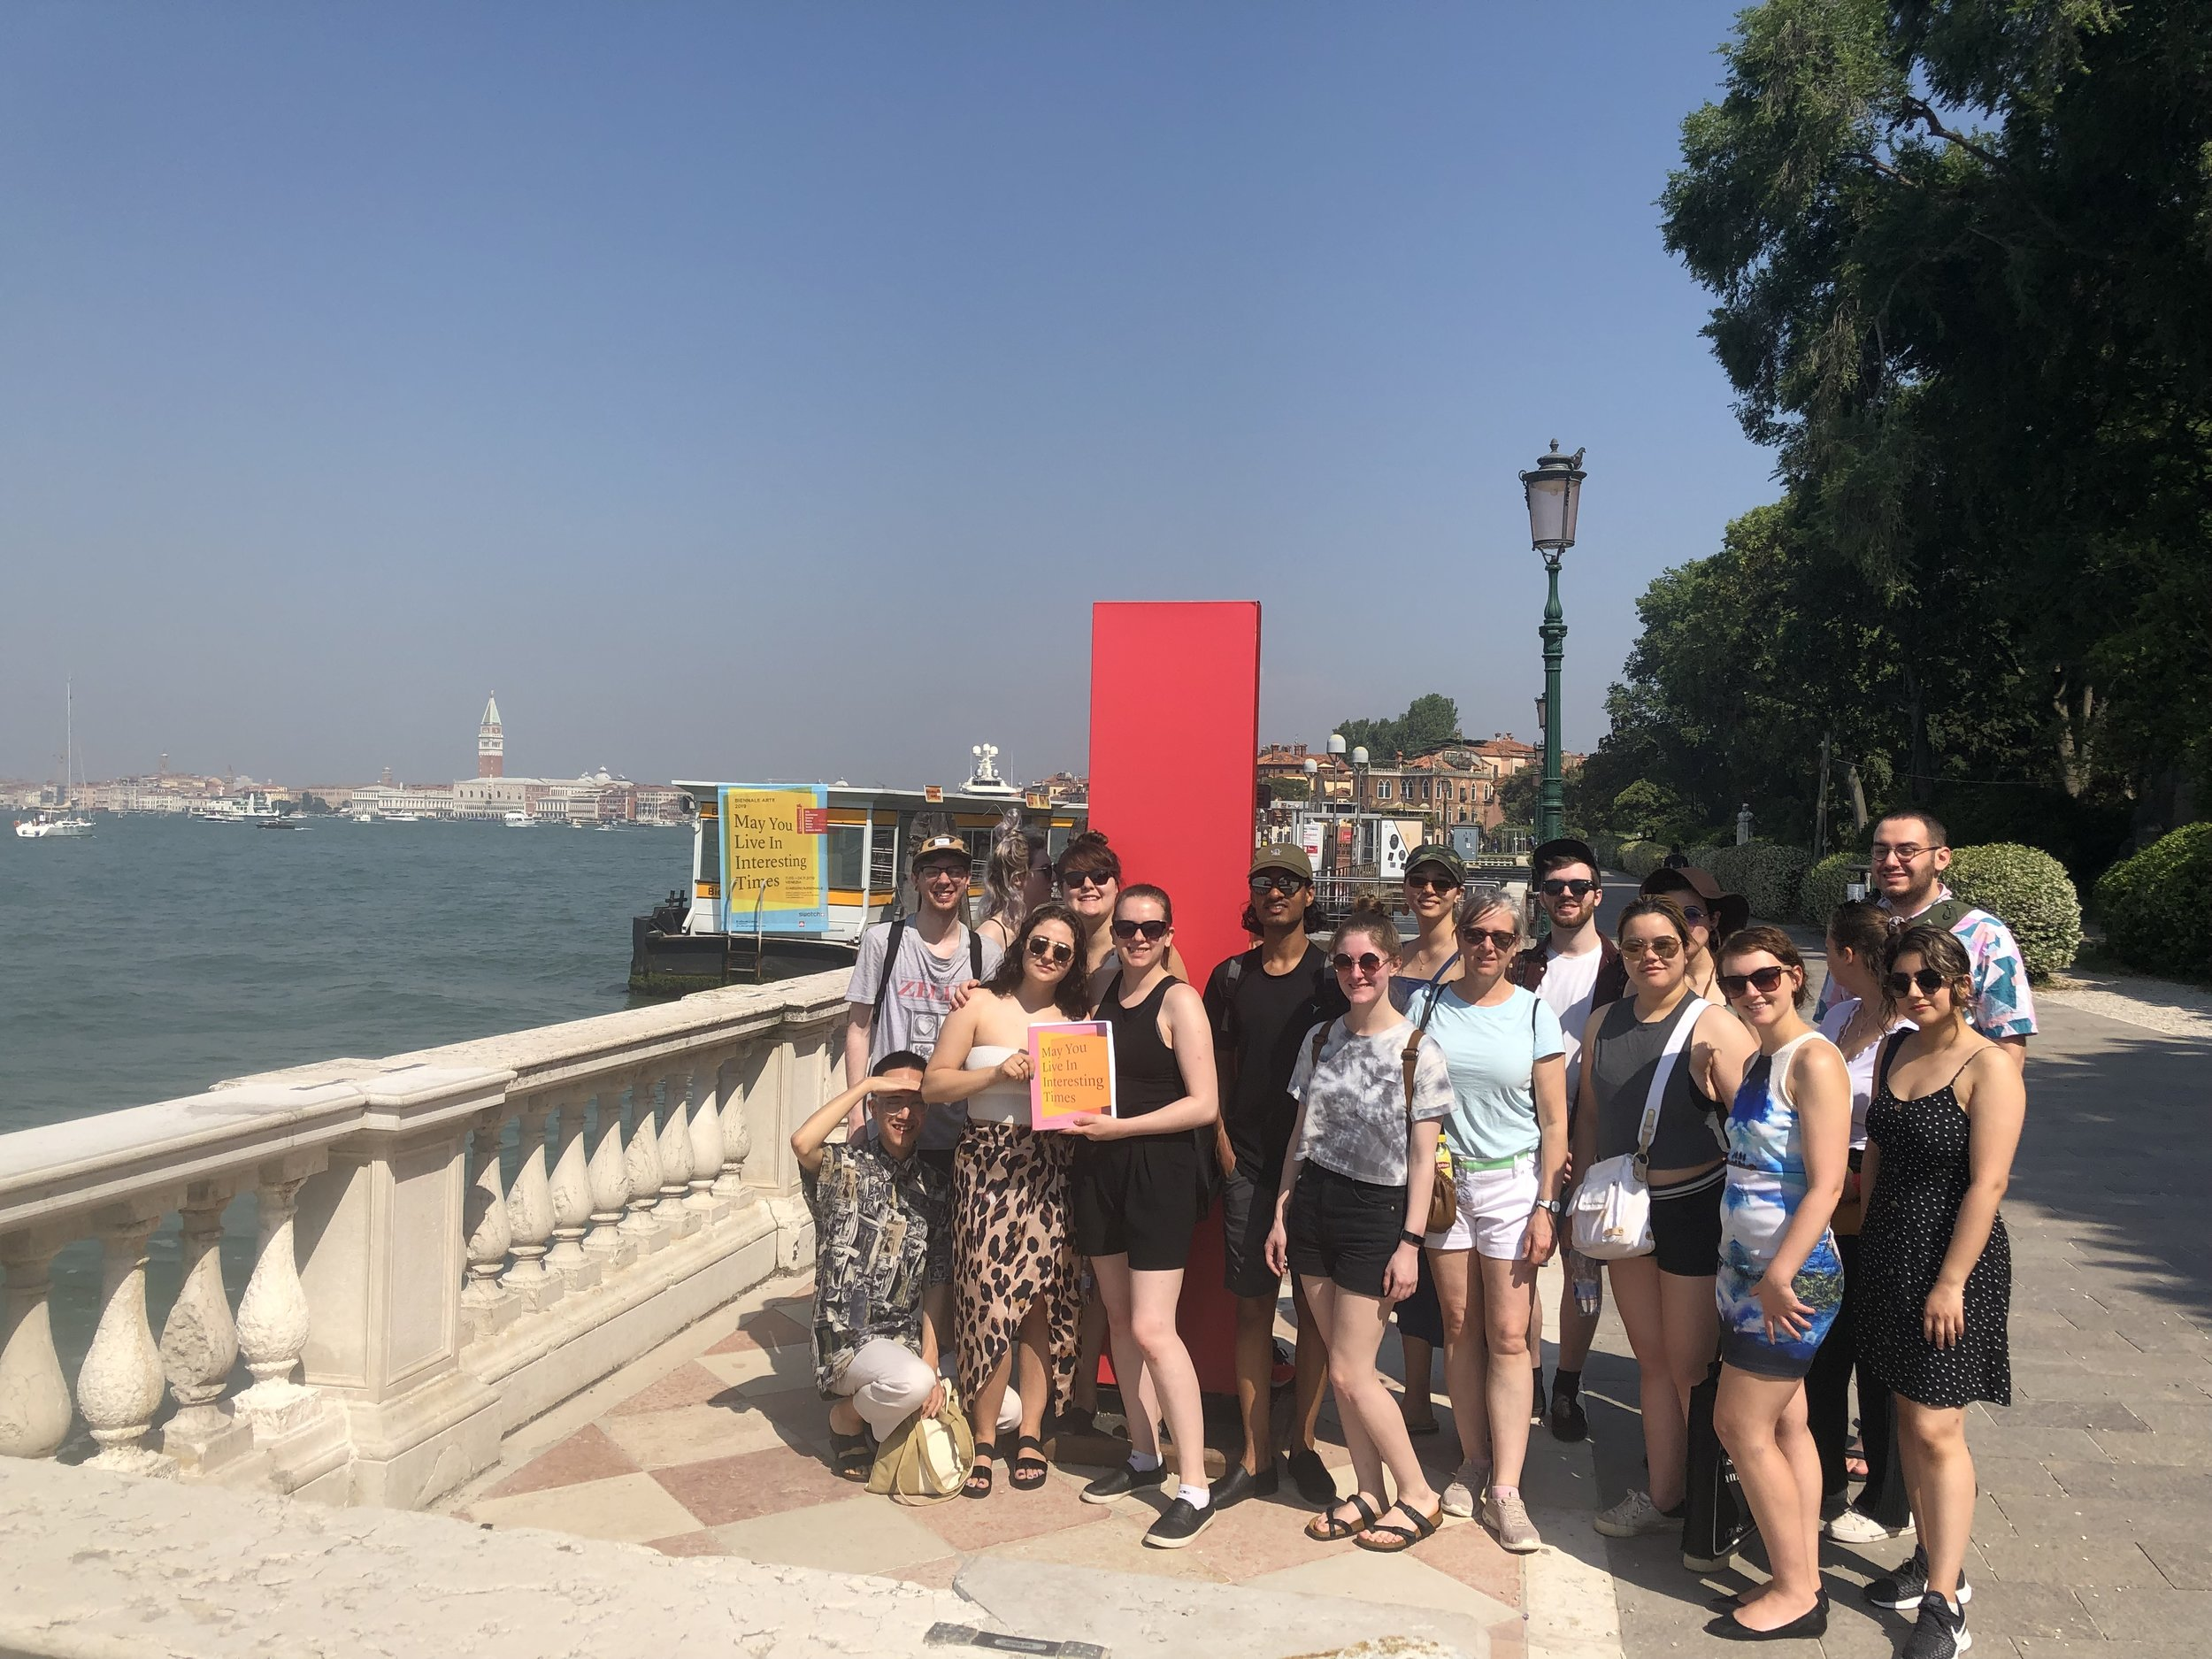 The group posing outside the Venice Biennale Giardini grounds (Allison is at center in the photo).